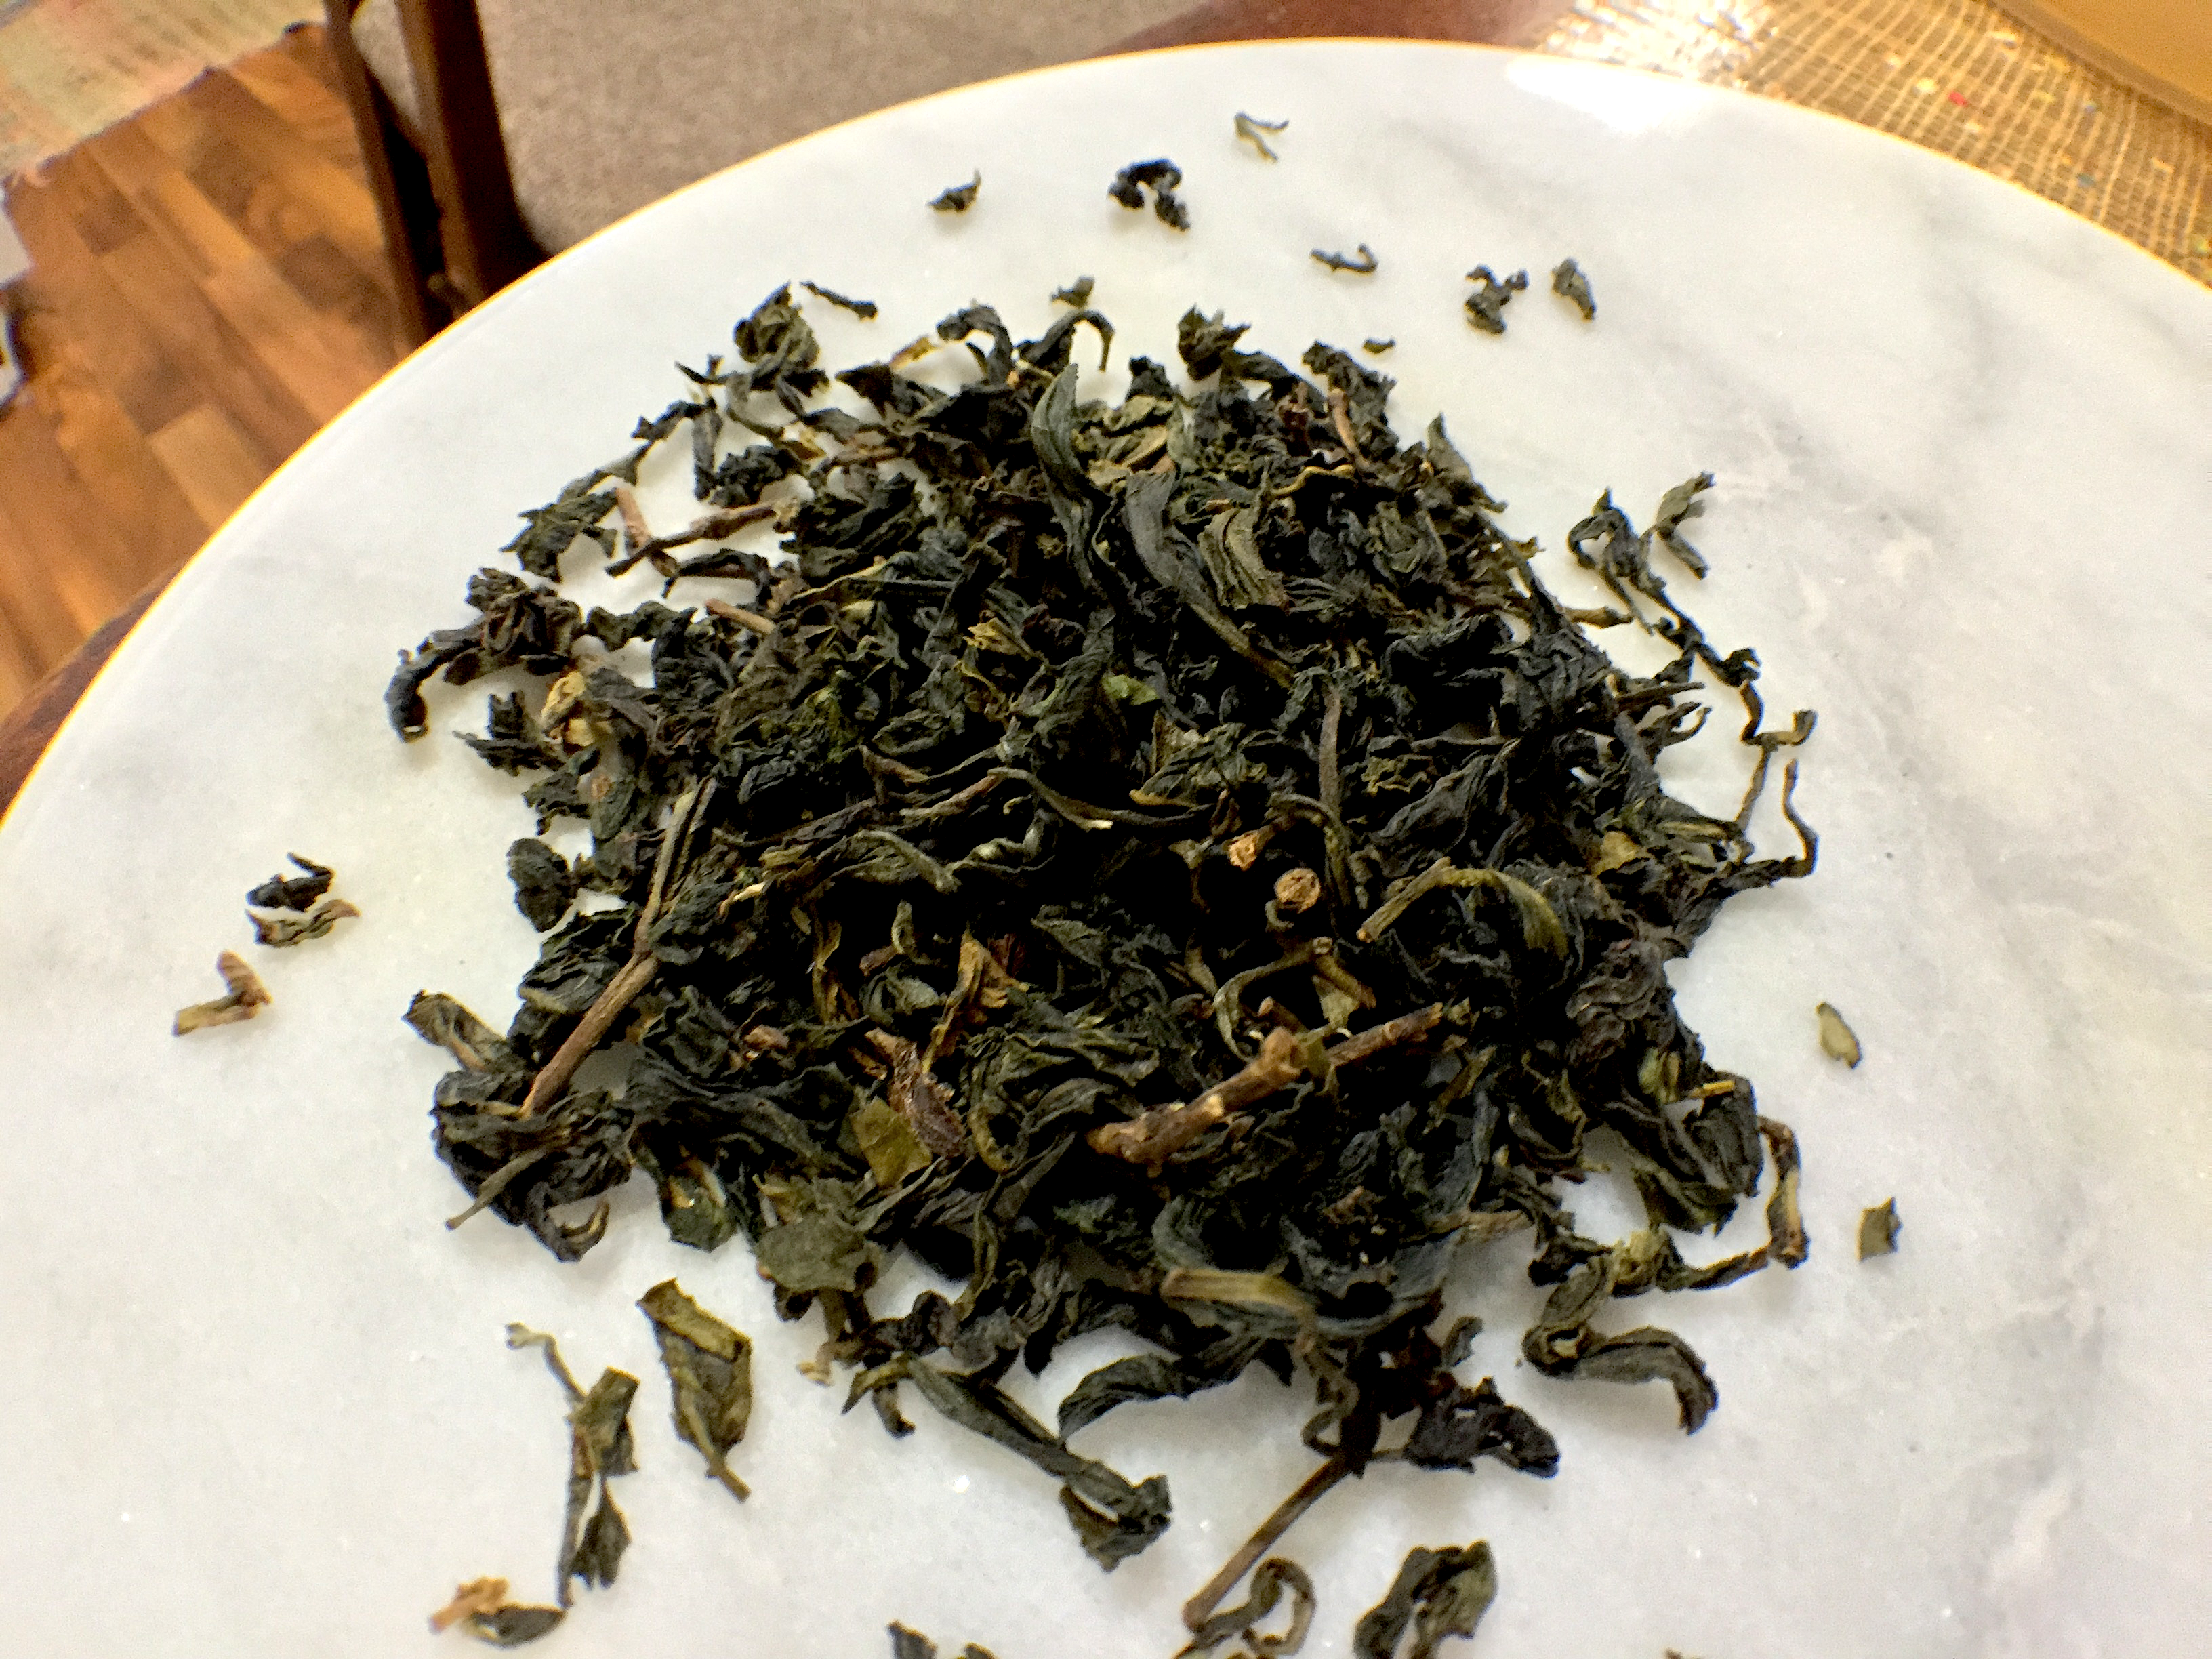 Bao Zhong High Grade (Art of Tea): loose leaf by Jocilyn Mors is licensed under a Creative Commons Attribution-ShareAlike 4.0 International License.